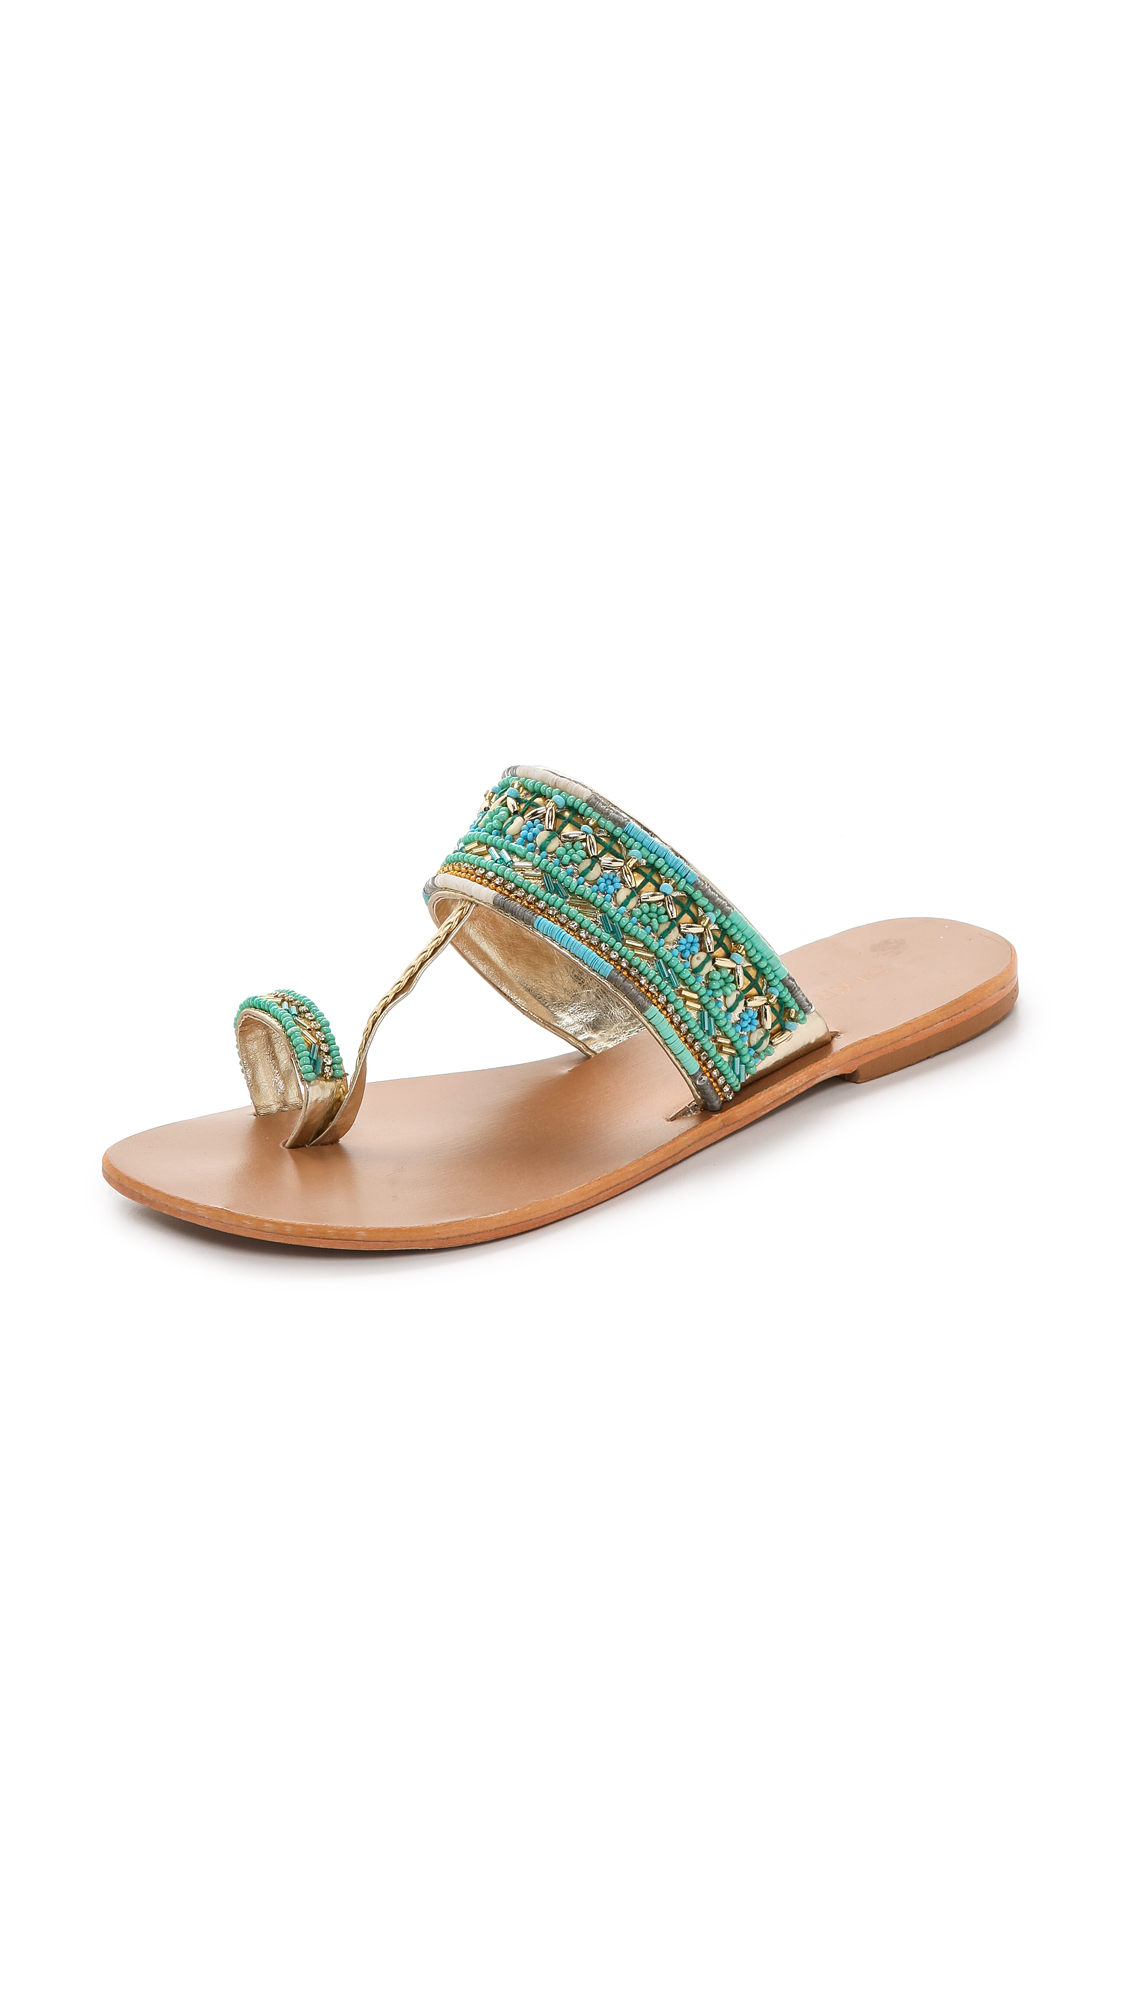 Star Mela Sabri Beaded Sandals - Turquoise In Blue - Lyst-9536